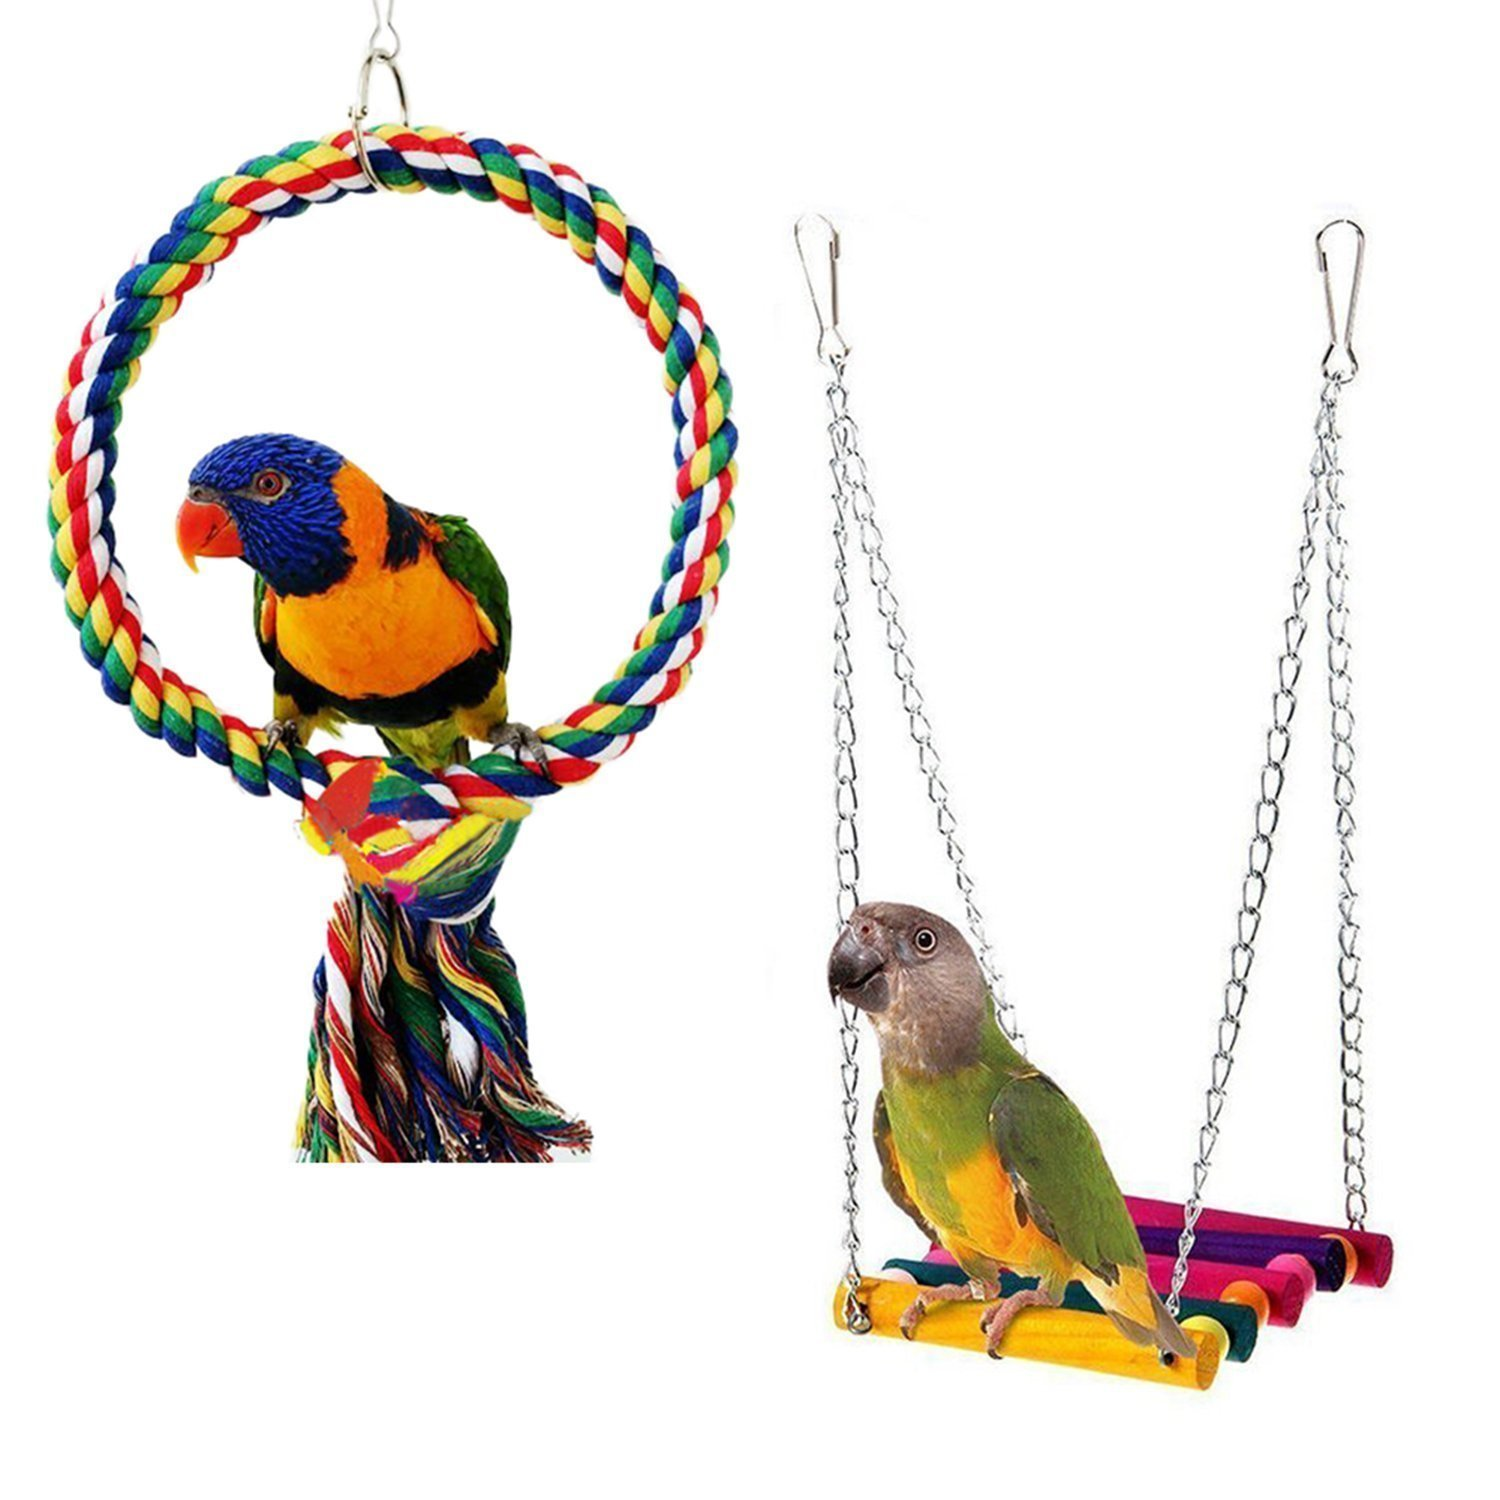 RYPET Bird Swing - Wooden Conure Toys Bird Cage Hammock Swing Hanging Toy for Small Parakeets Cockatiels, Conures, Macaws, Parrots, Love Birds, Finches(2 Packs)